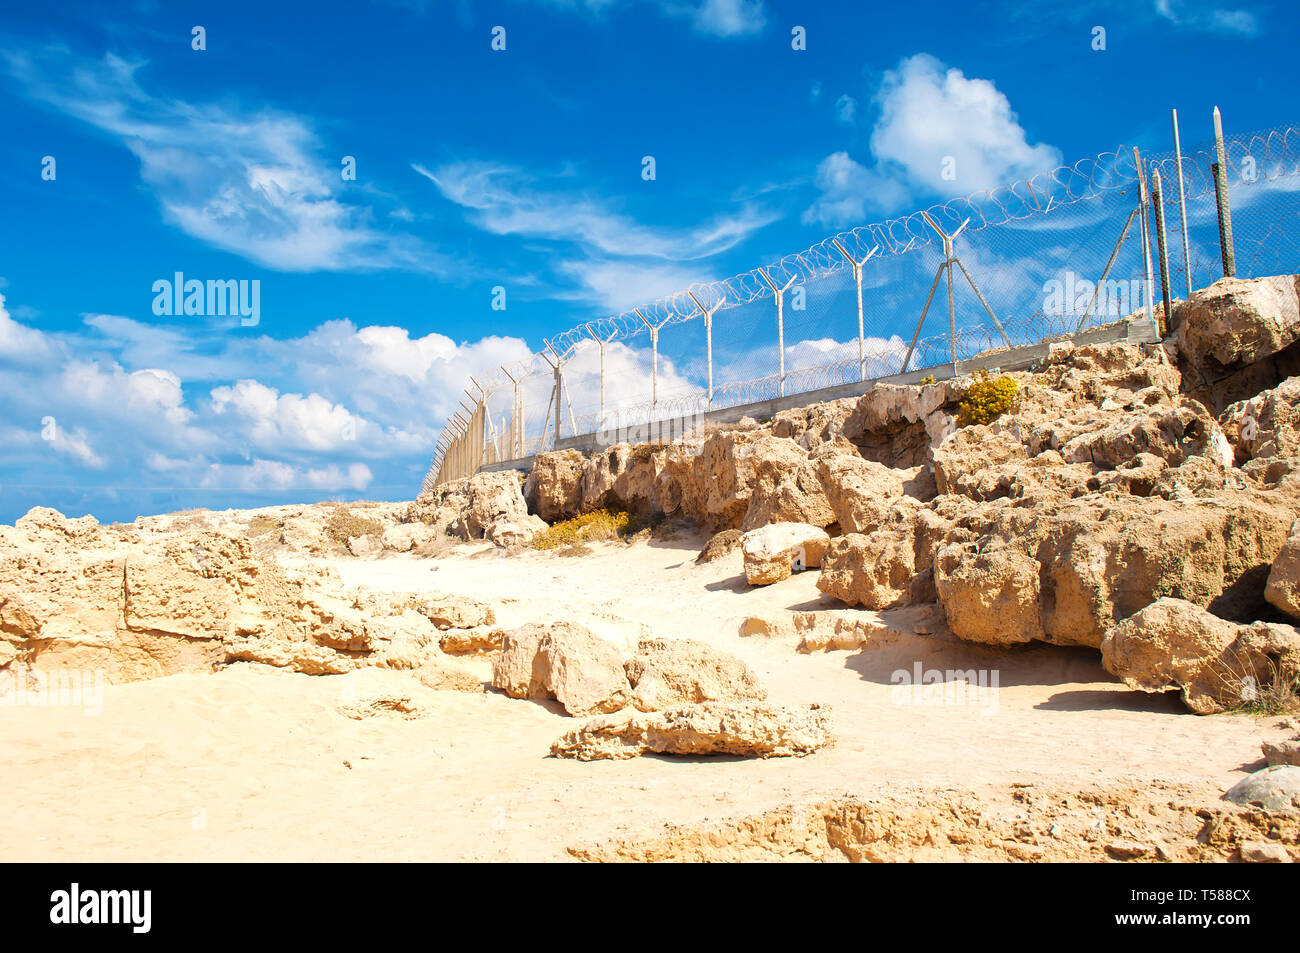 Military fence from barbed wire on a barren terrain with many rock boulders on a warm day in fall - Stock Image